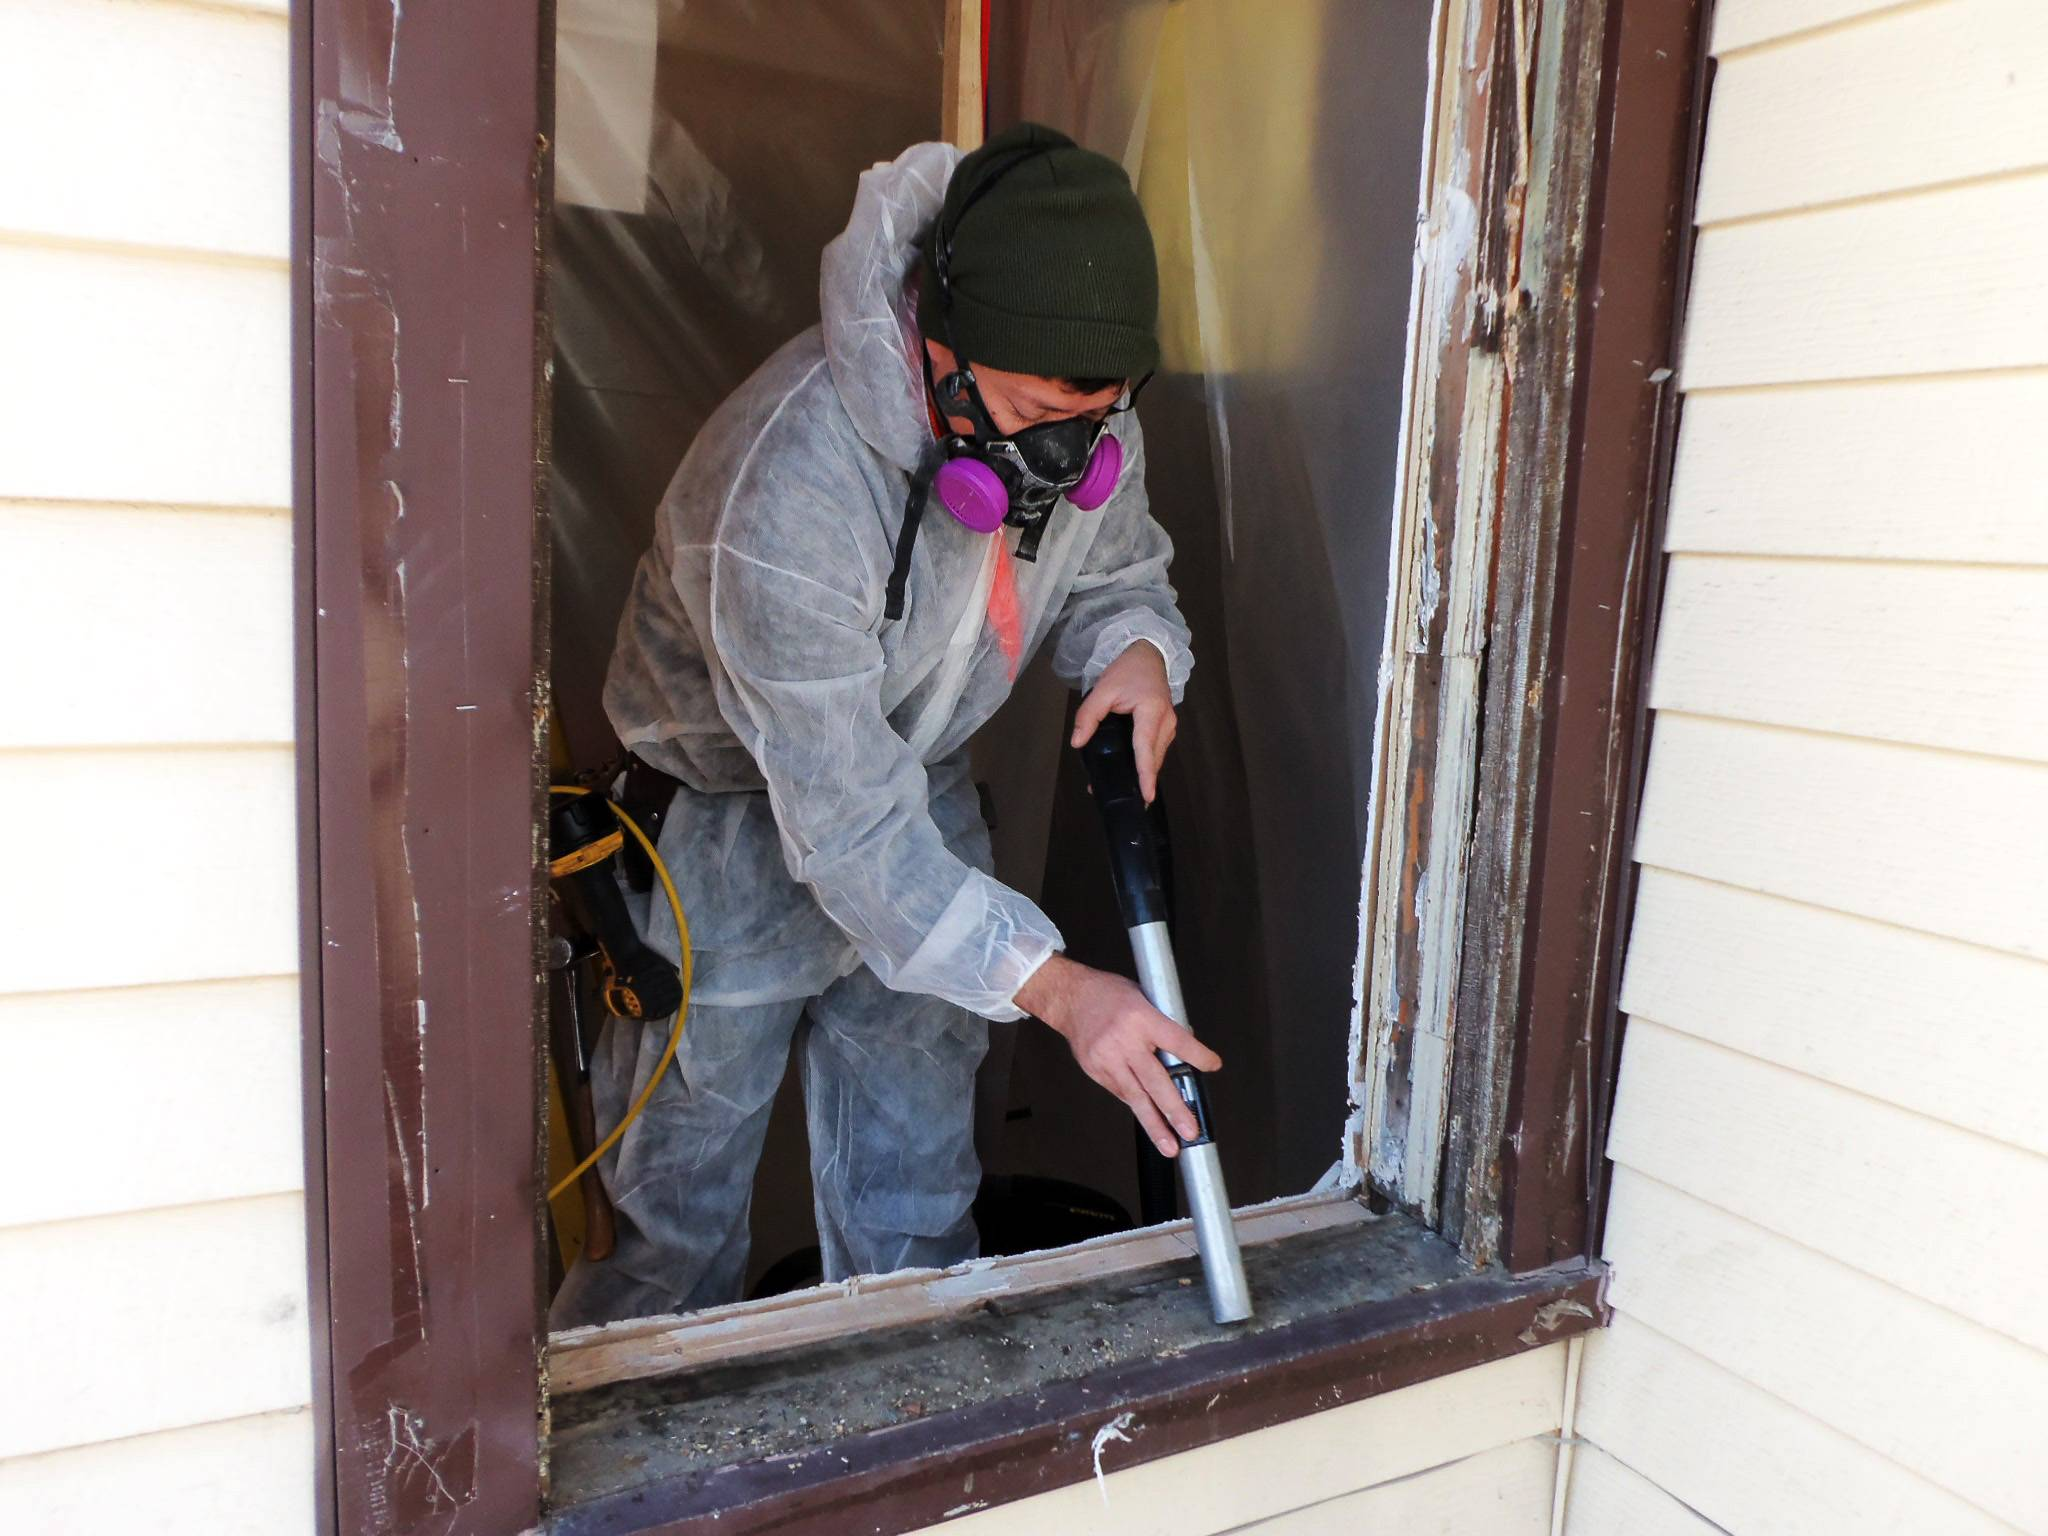 Lead can have long-lasting health effects when it is inhaled or ingested in large quantities. Removing the toxin from homes requires respirators, protective clothing and numerous safety precautions to ensure no ill effects occur for removers.